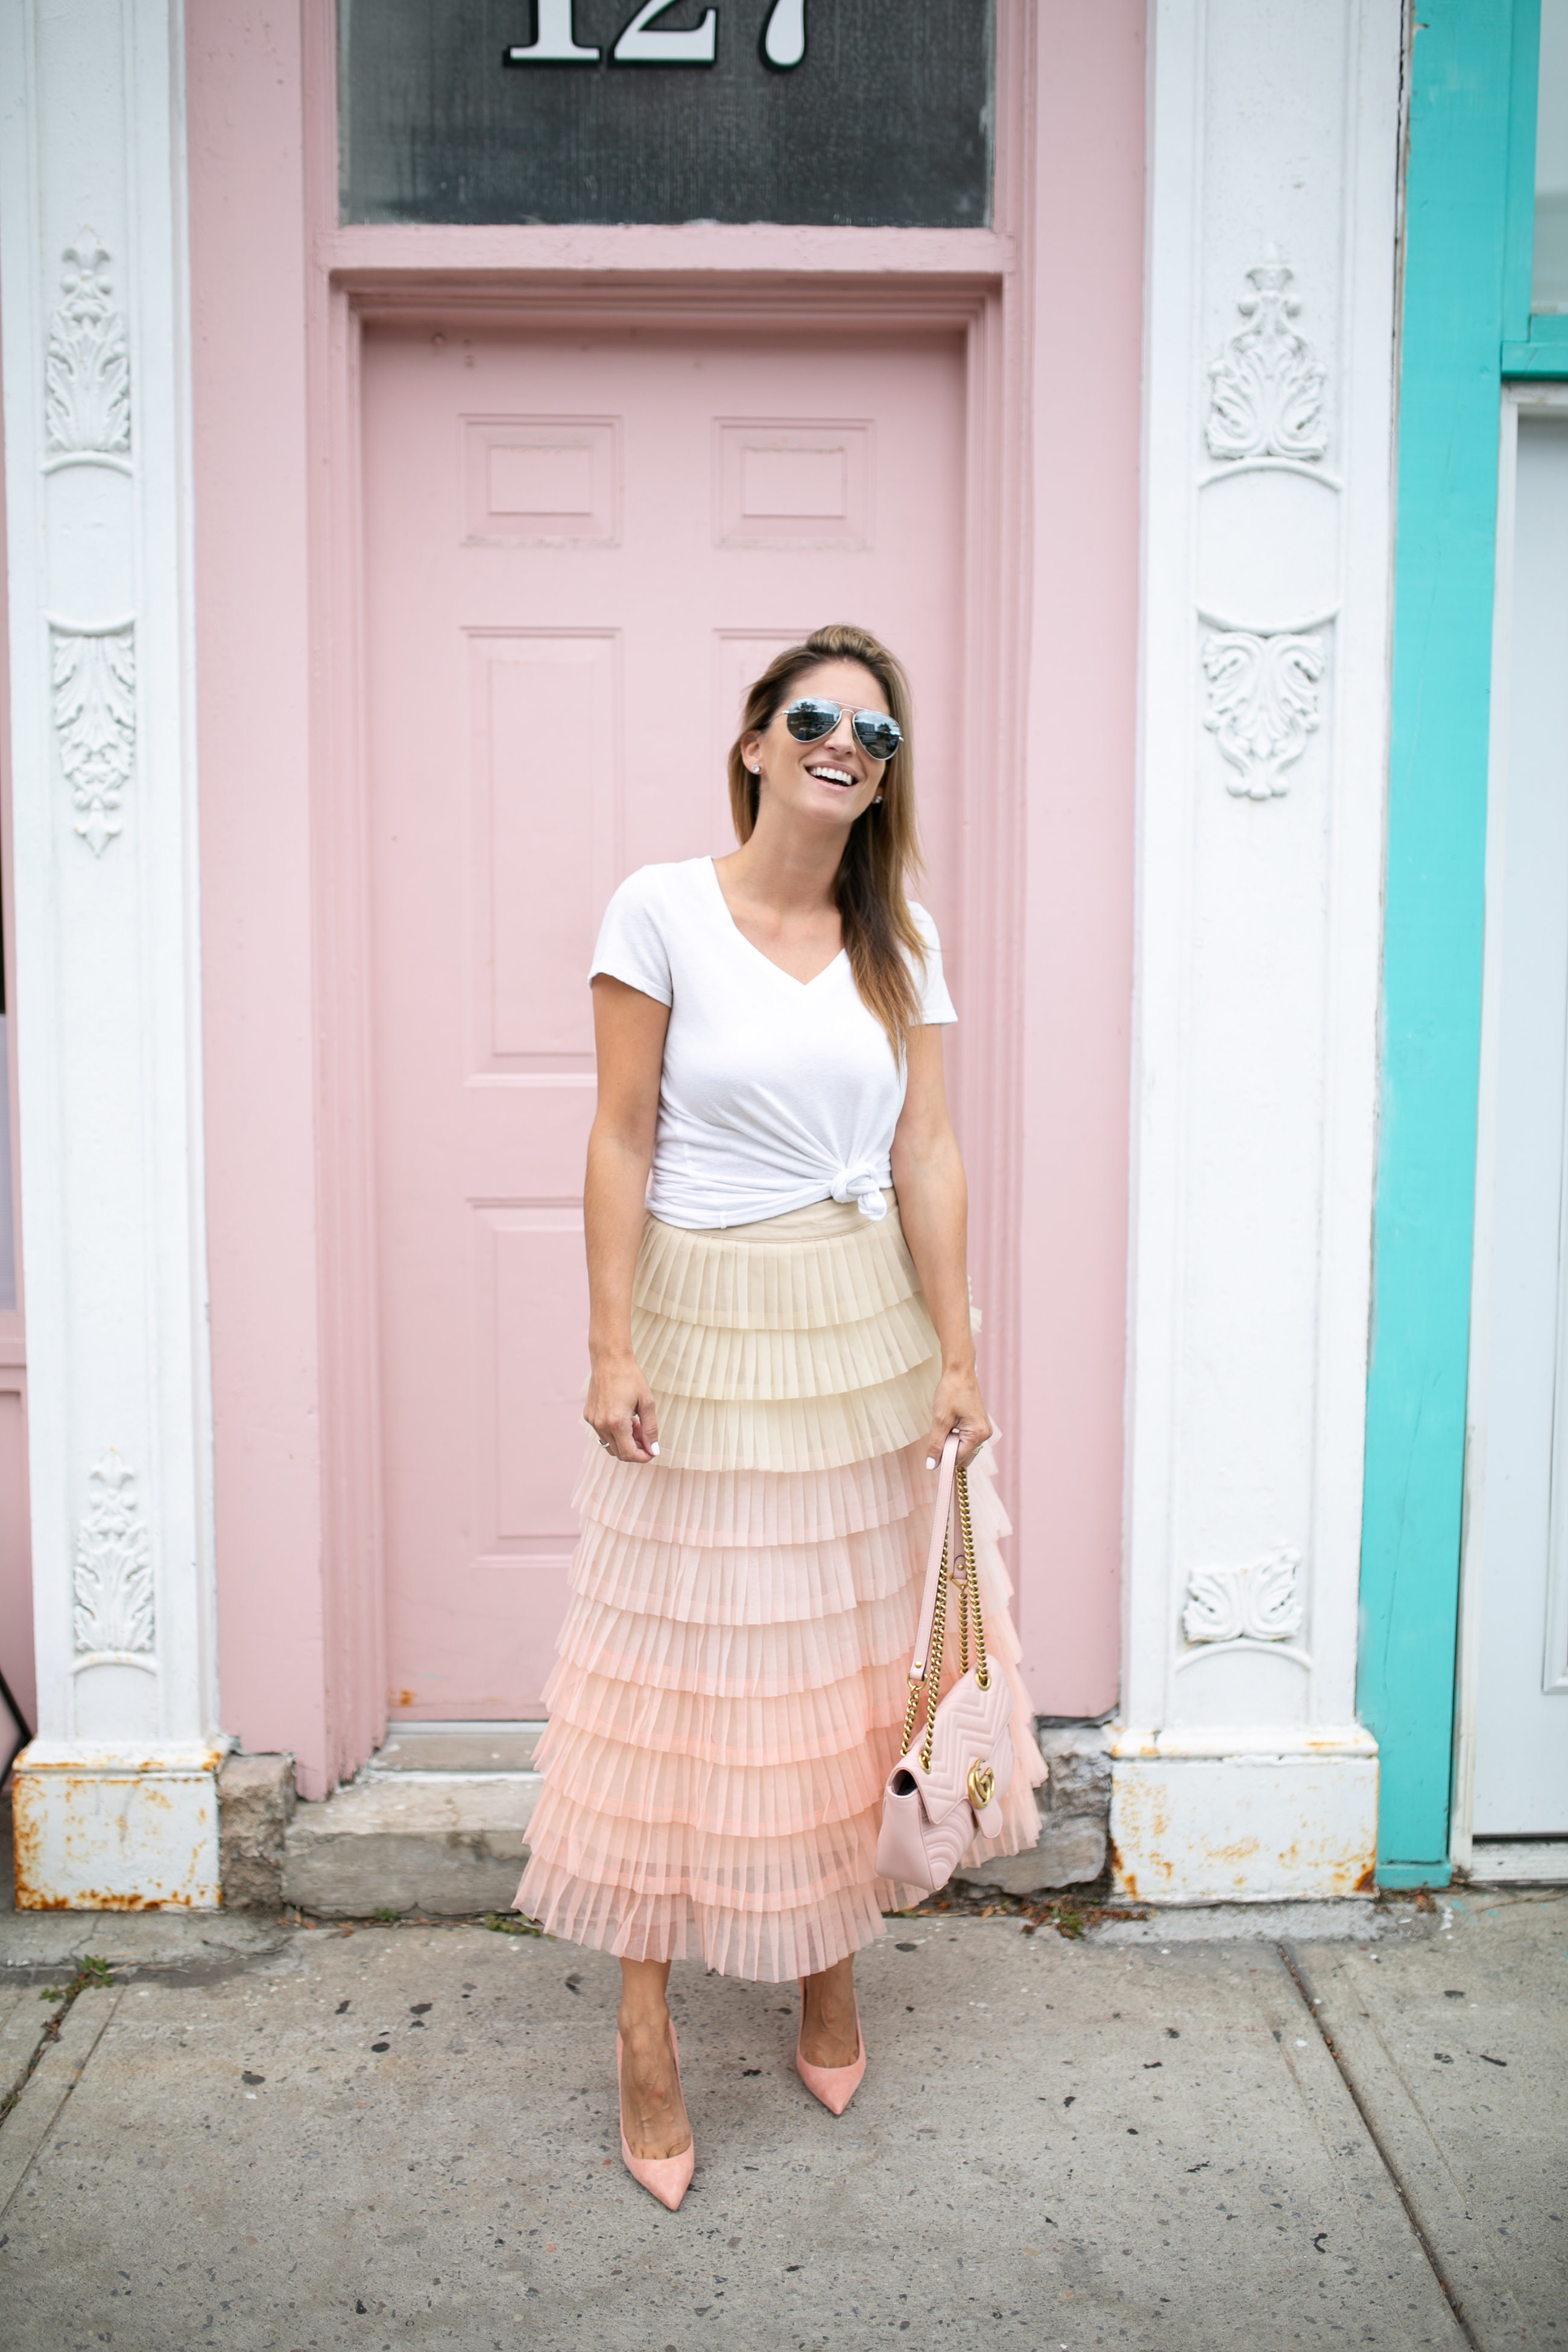 Sweetest DreamChicwish Gradient Tiered Mesh Skirt; tiered maxi skirt; how to style a tulle skirt; fall fashion; durham region blogger Mandy Furnis; sparkleshinylove; whitby style blogger